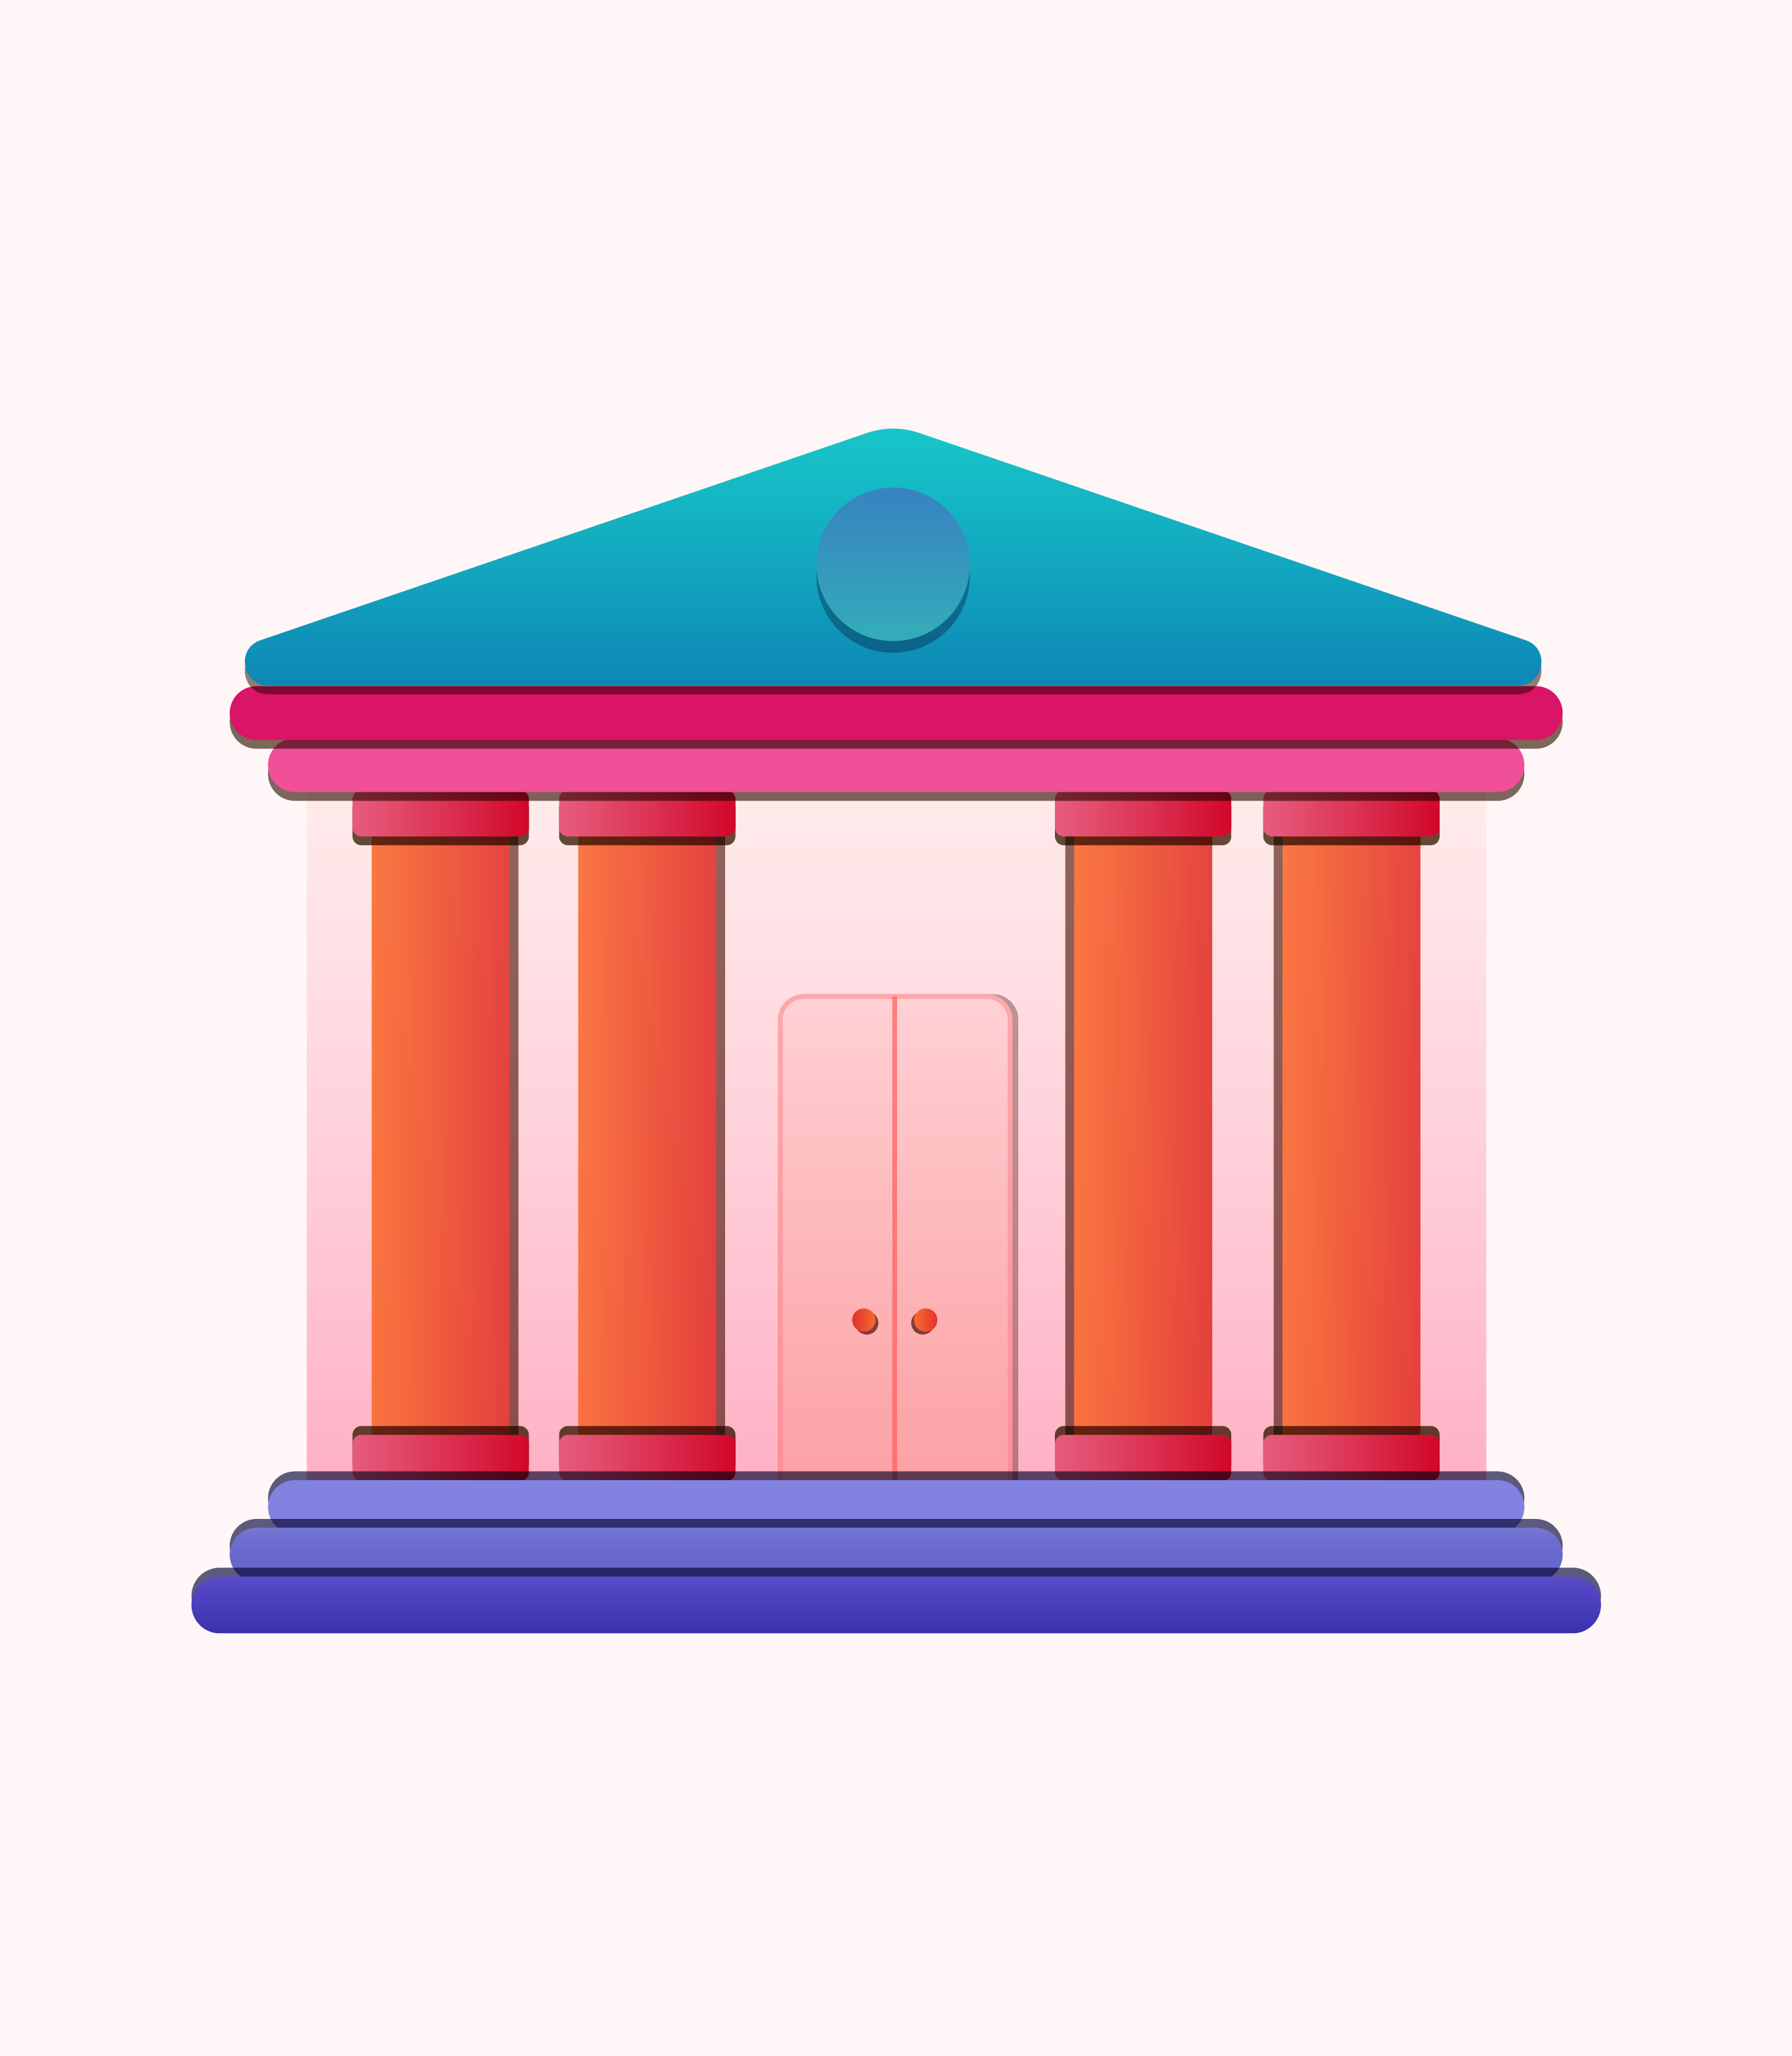 banque bâtiments illustration